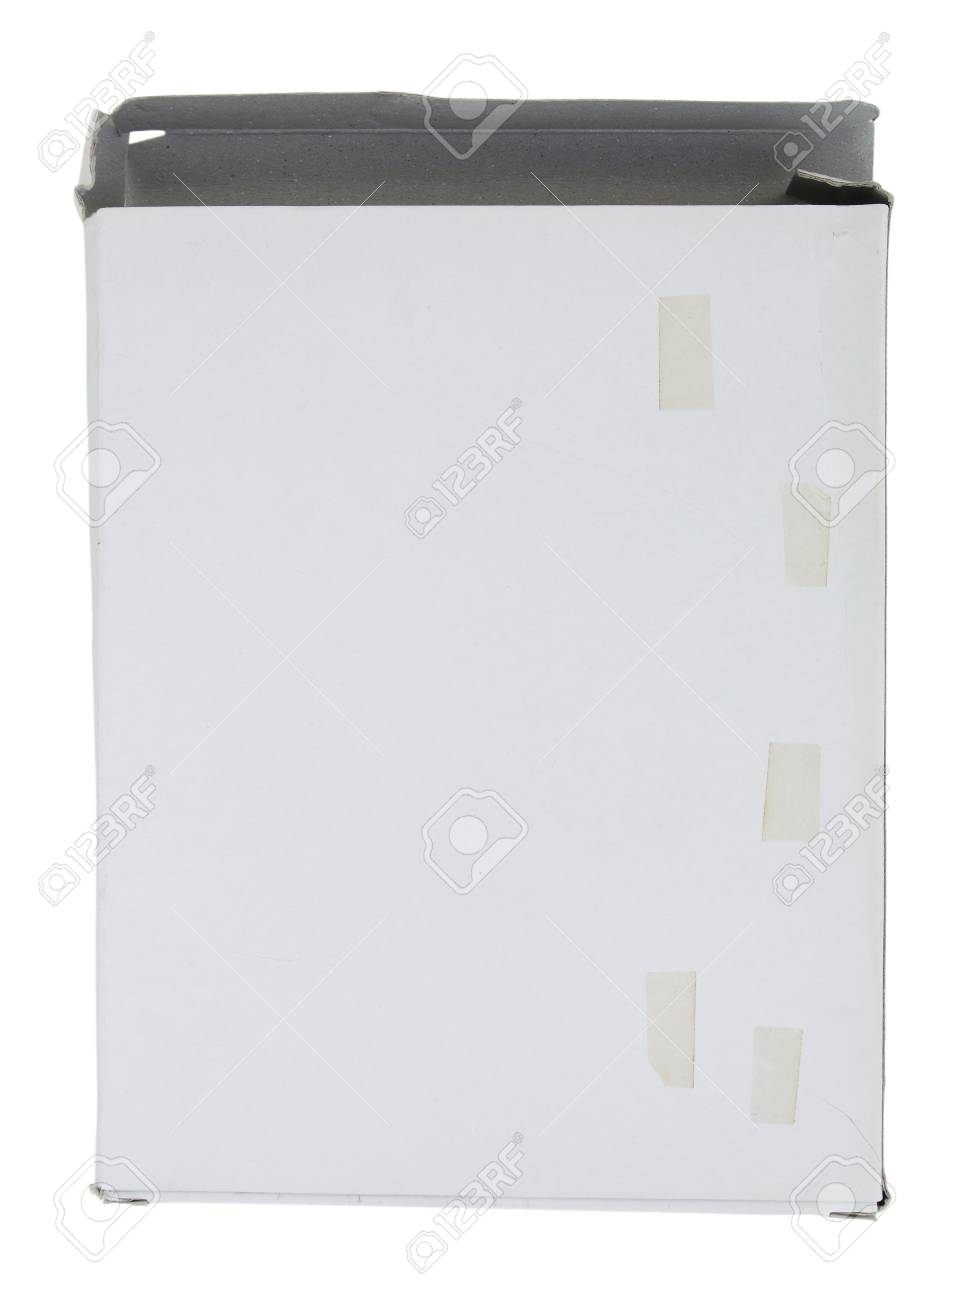 Old white cardboard box with adhesive tape isolated on white background Stock Photo - 13995255